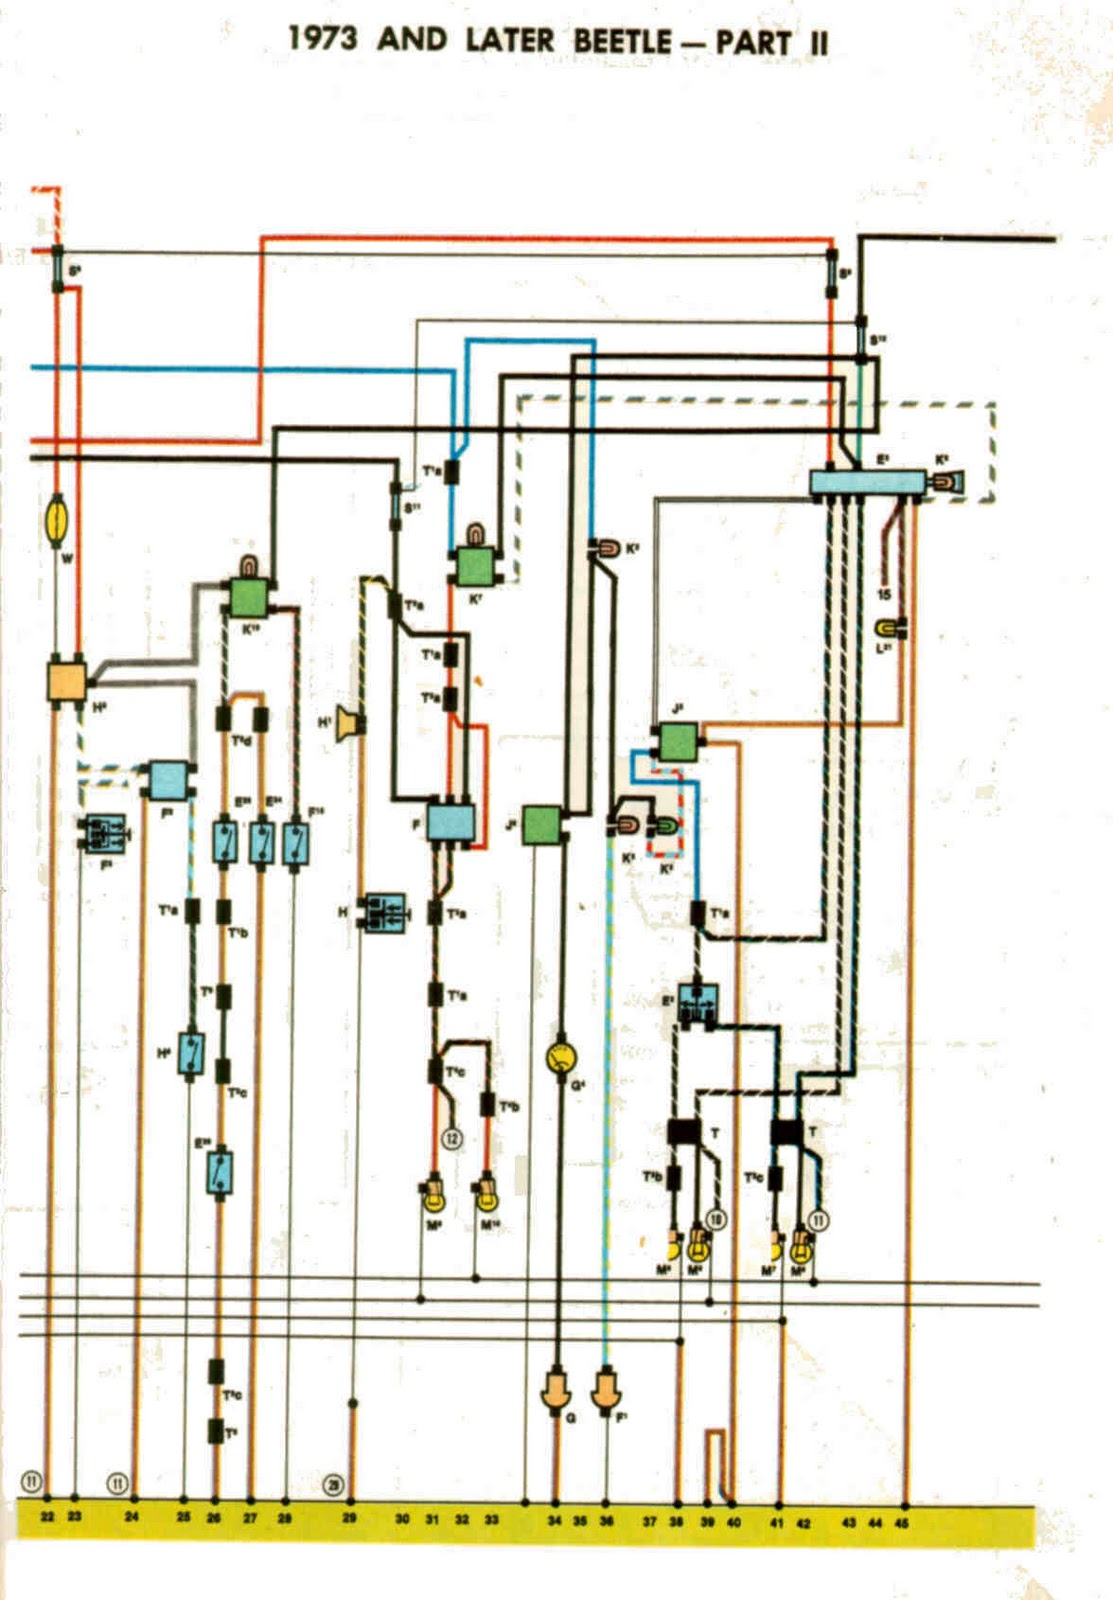 new beetle wiring diagram gfs p90 1973 free engine image for